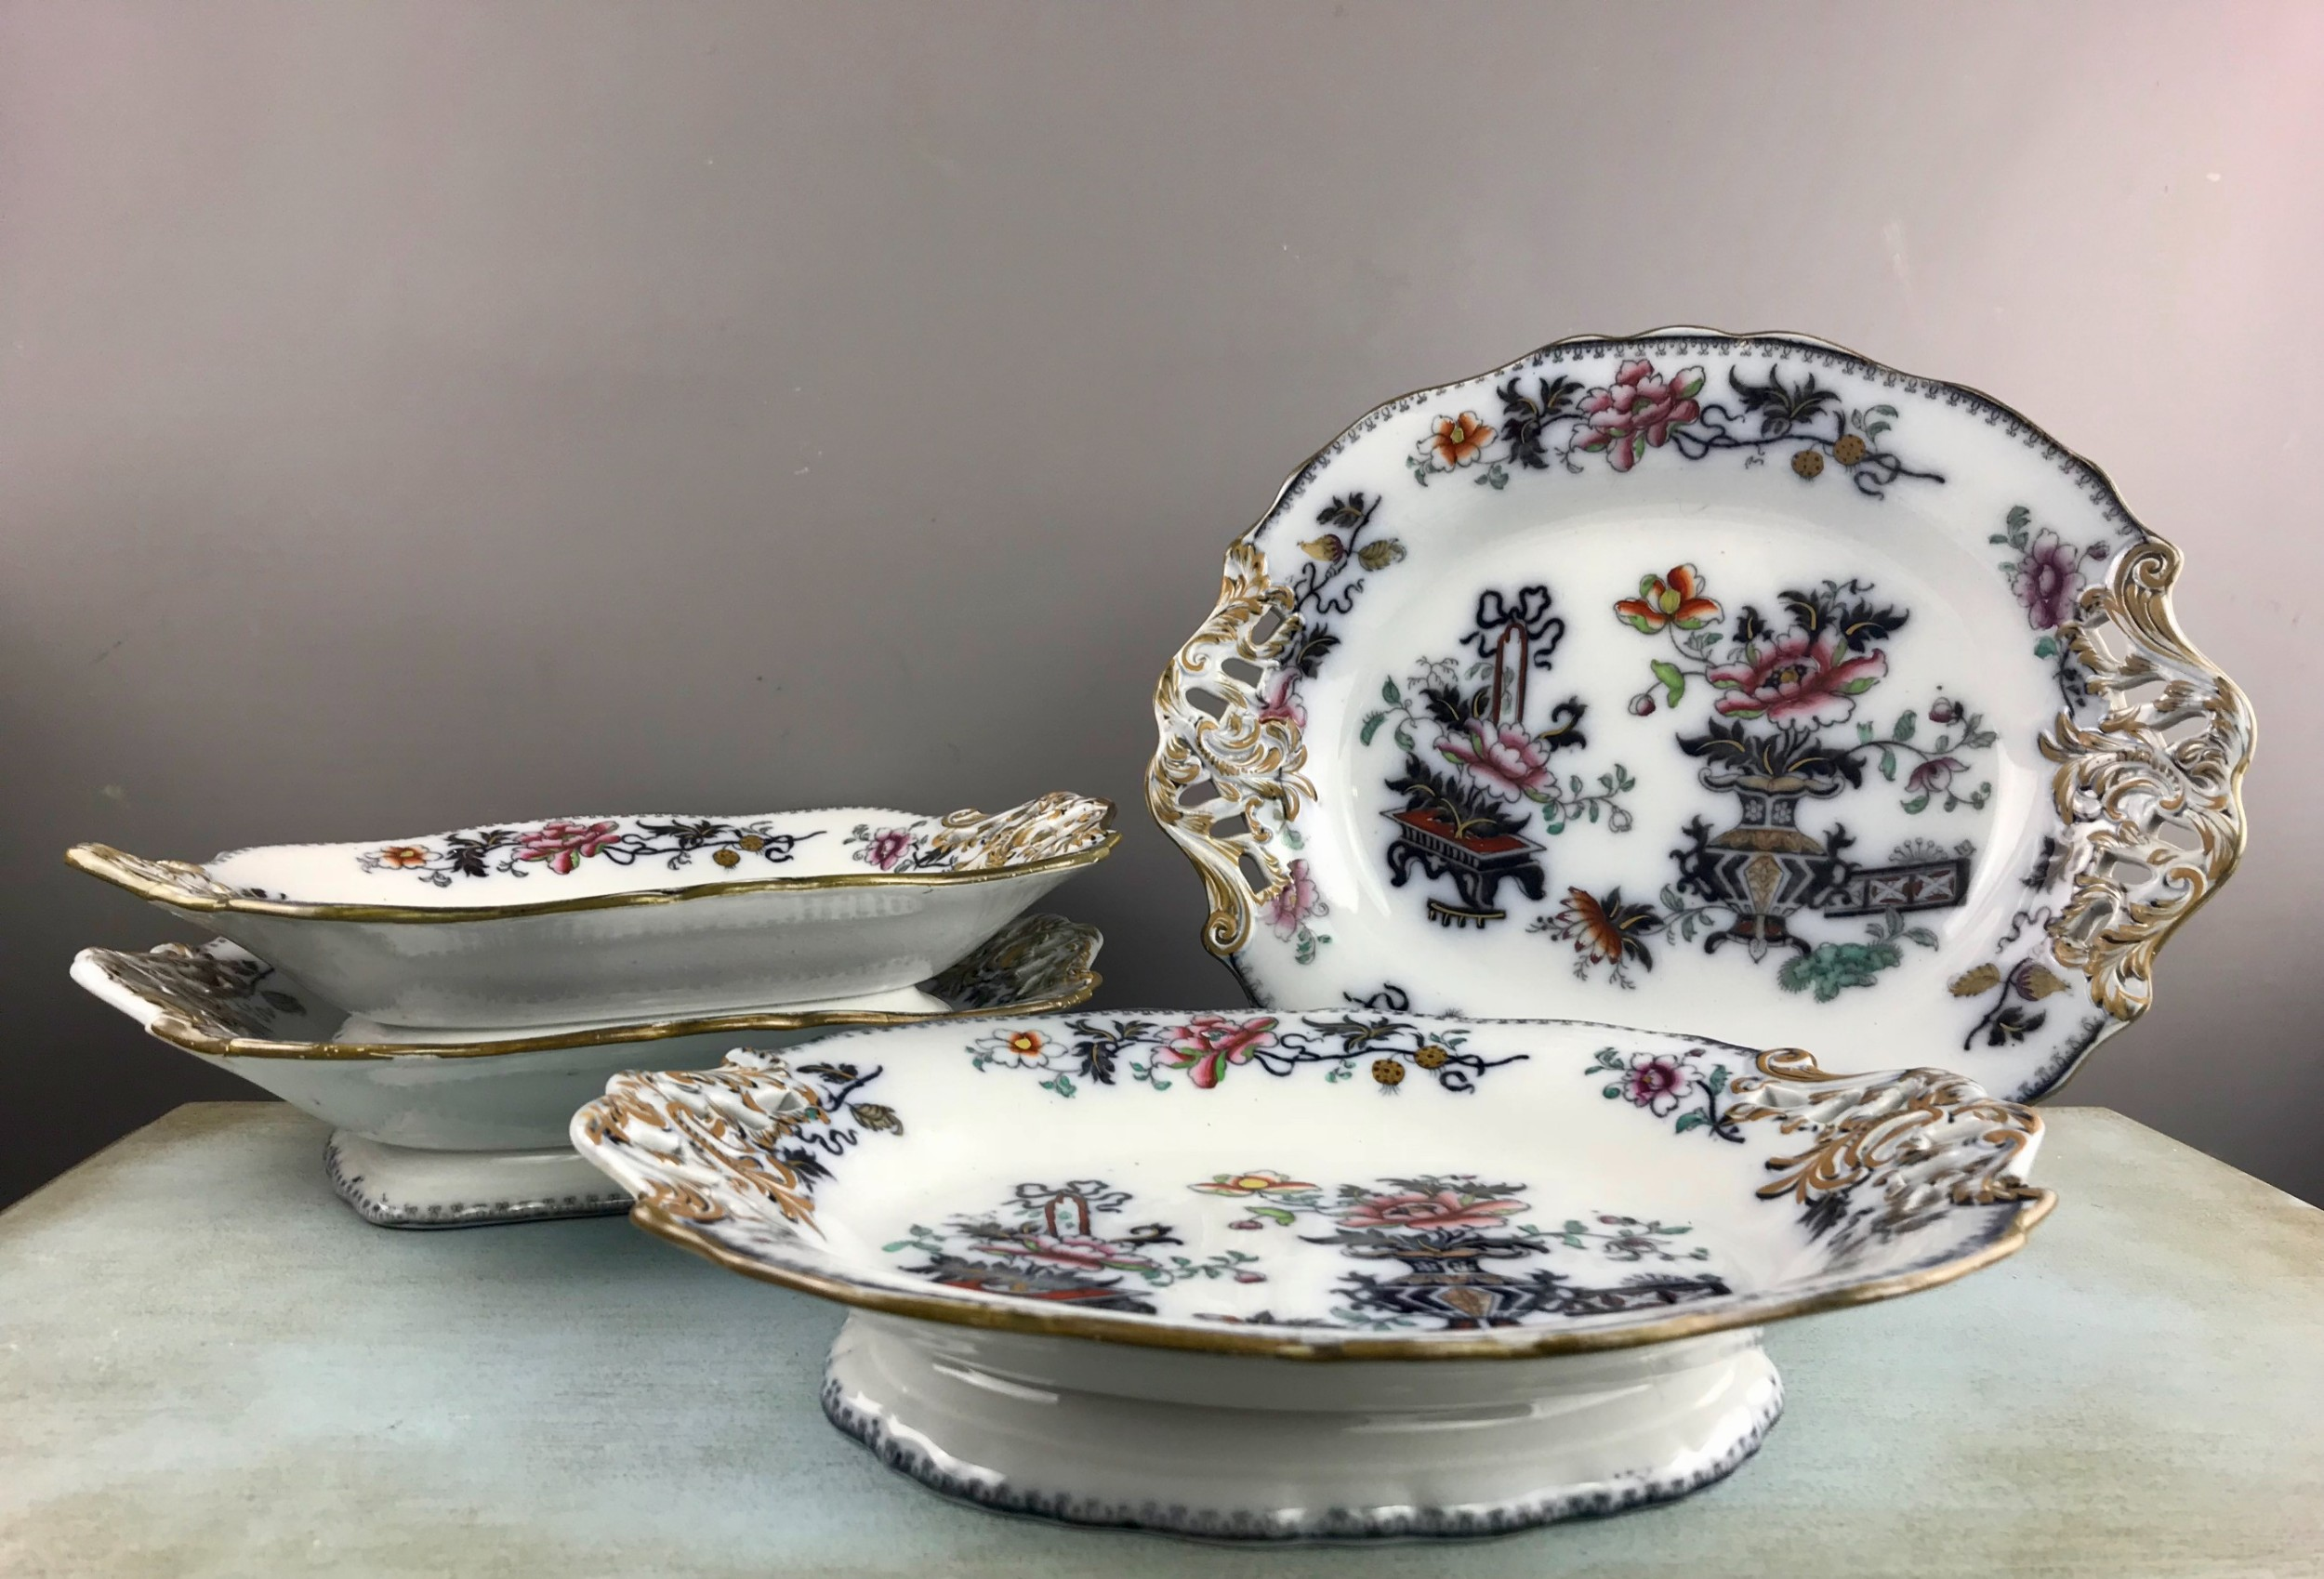 francis morley masons ironstone serving dishes tazzas in 'casket japan' pattern